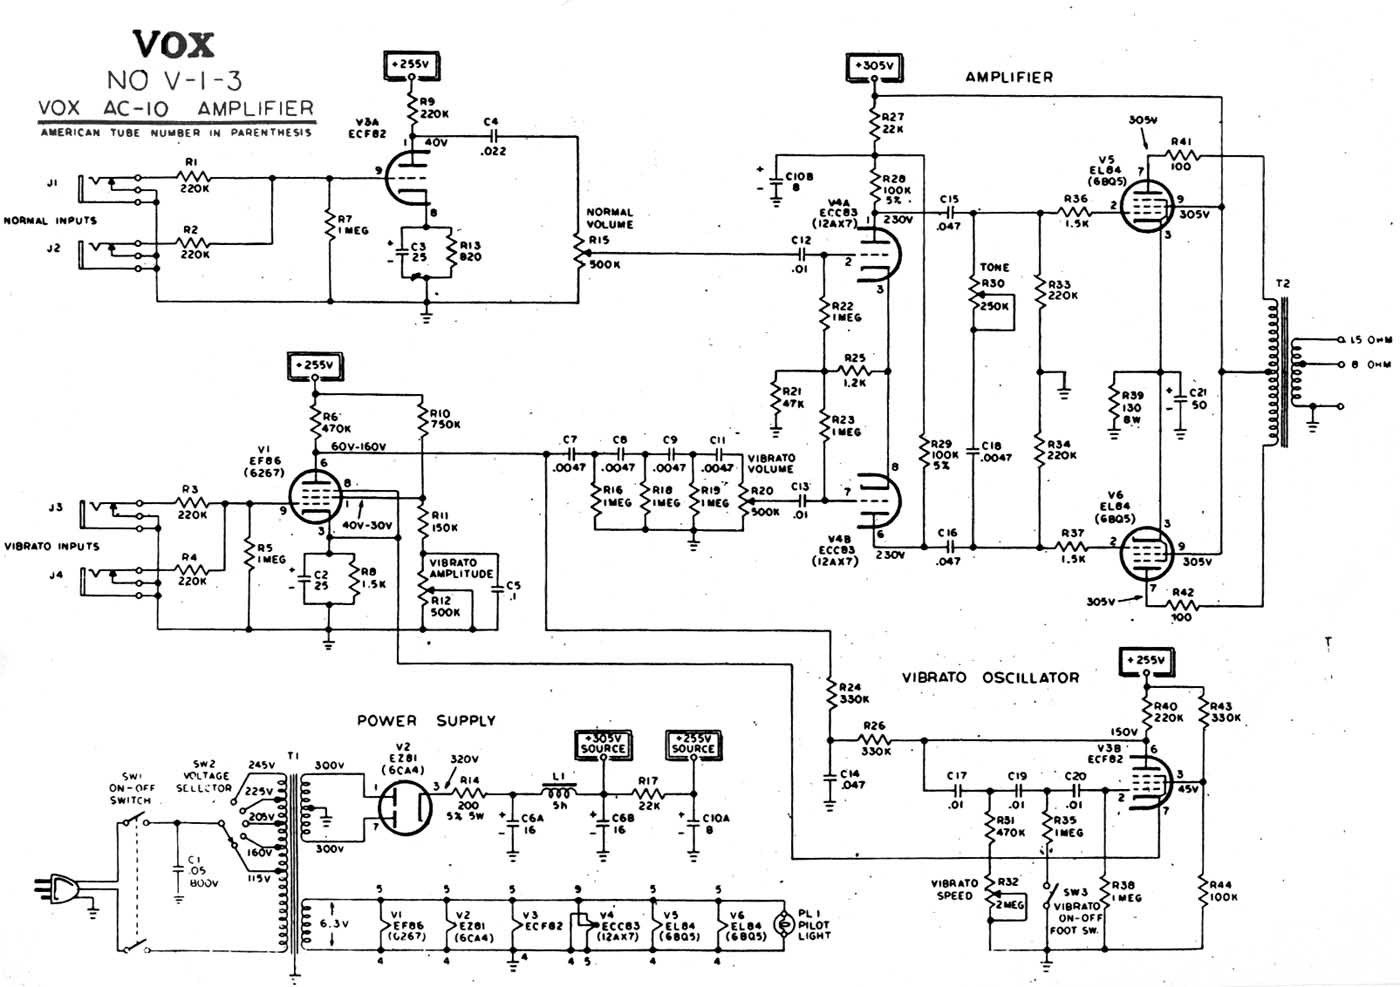 Vox Wiring Diagram Library 1960 Pontiac Ac10 Alternative Circuit Download